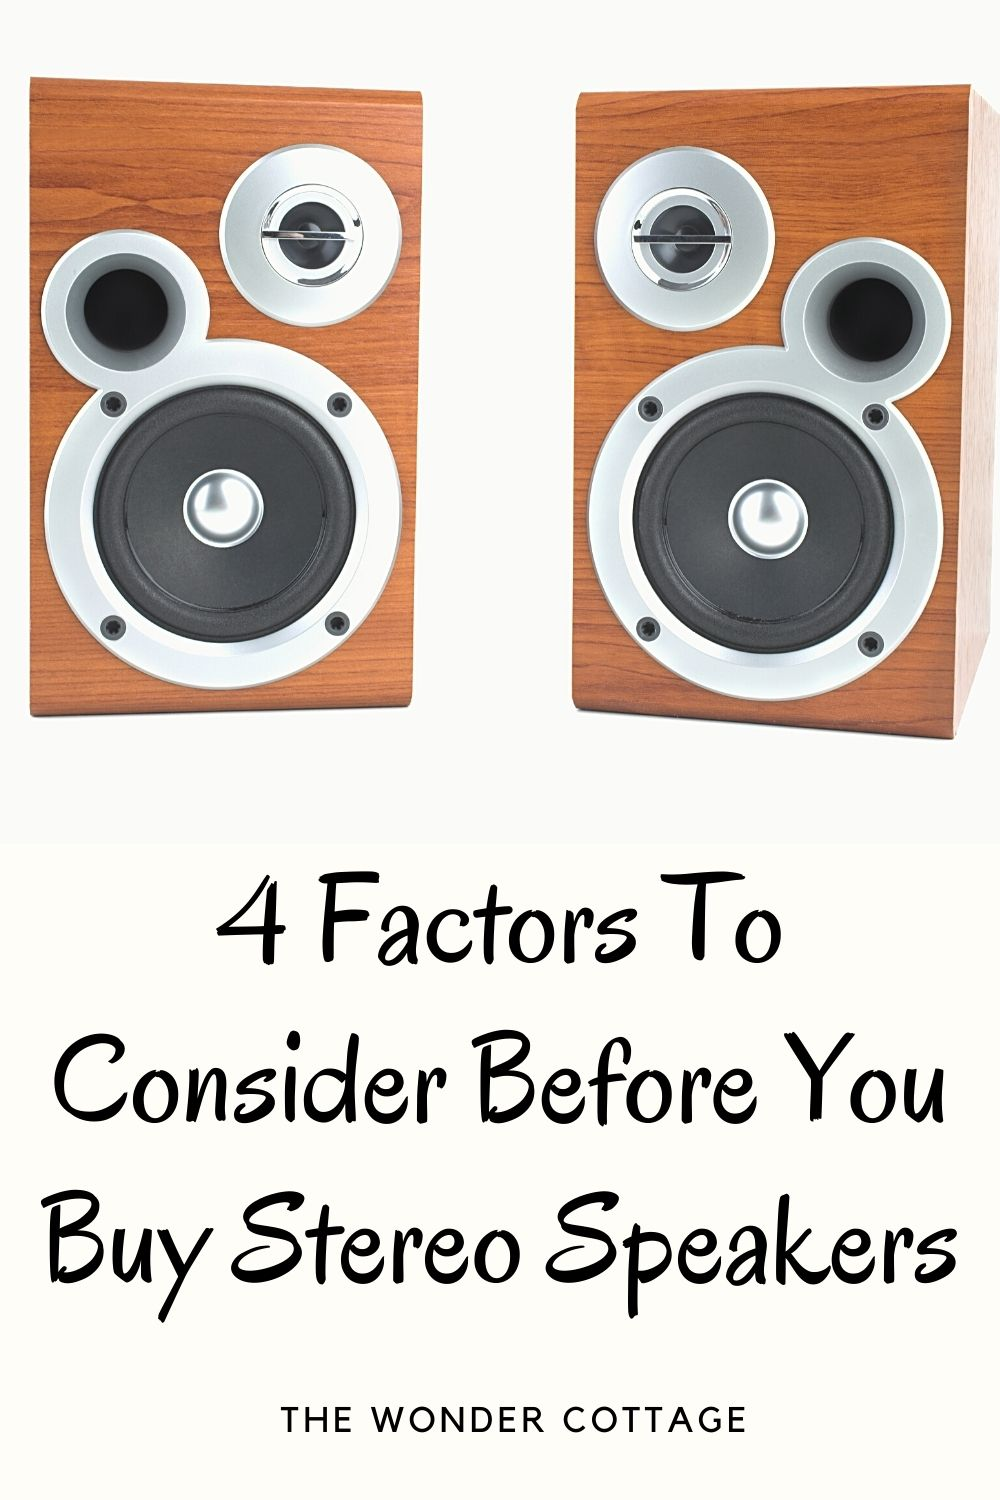 4 Factors To Consider Before You Buy Stereo Speakers